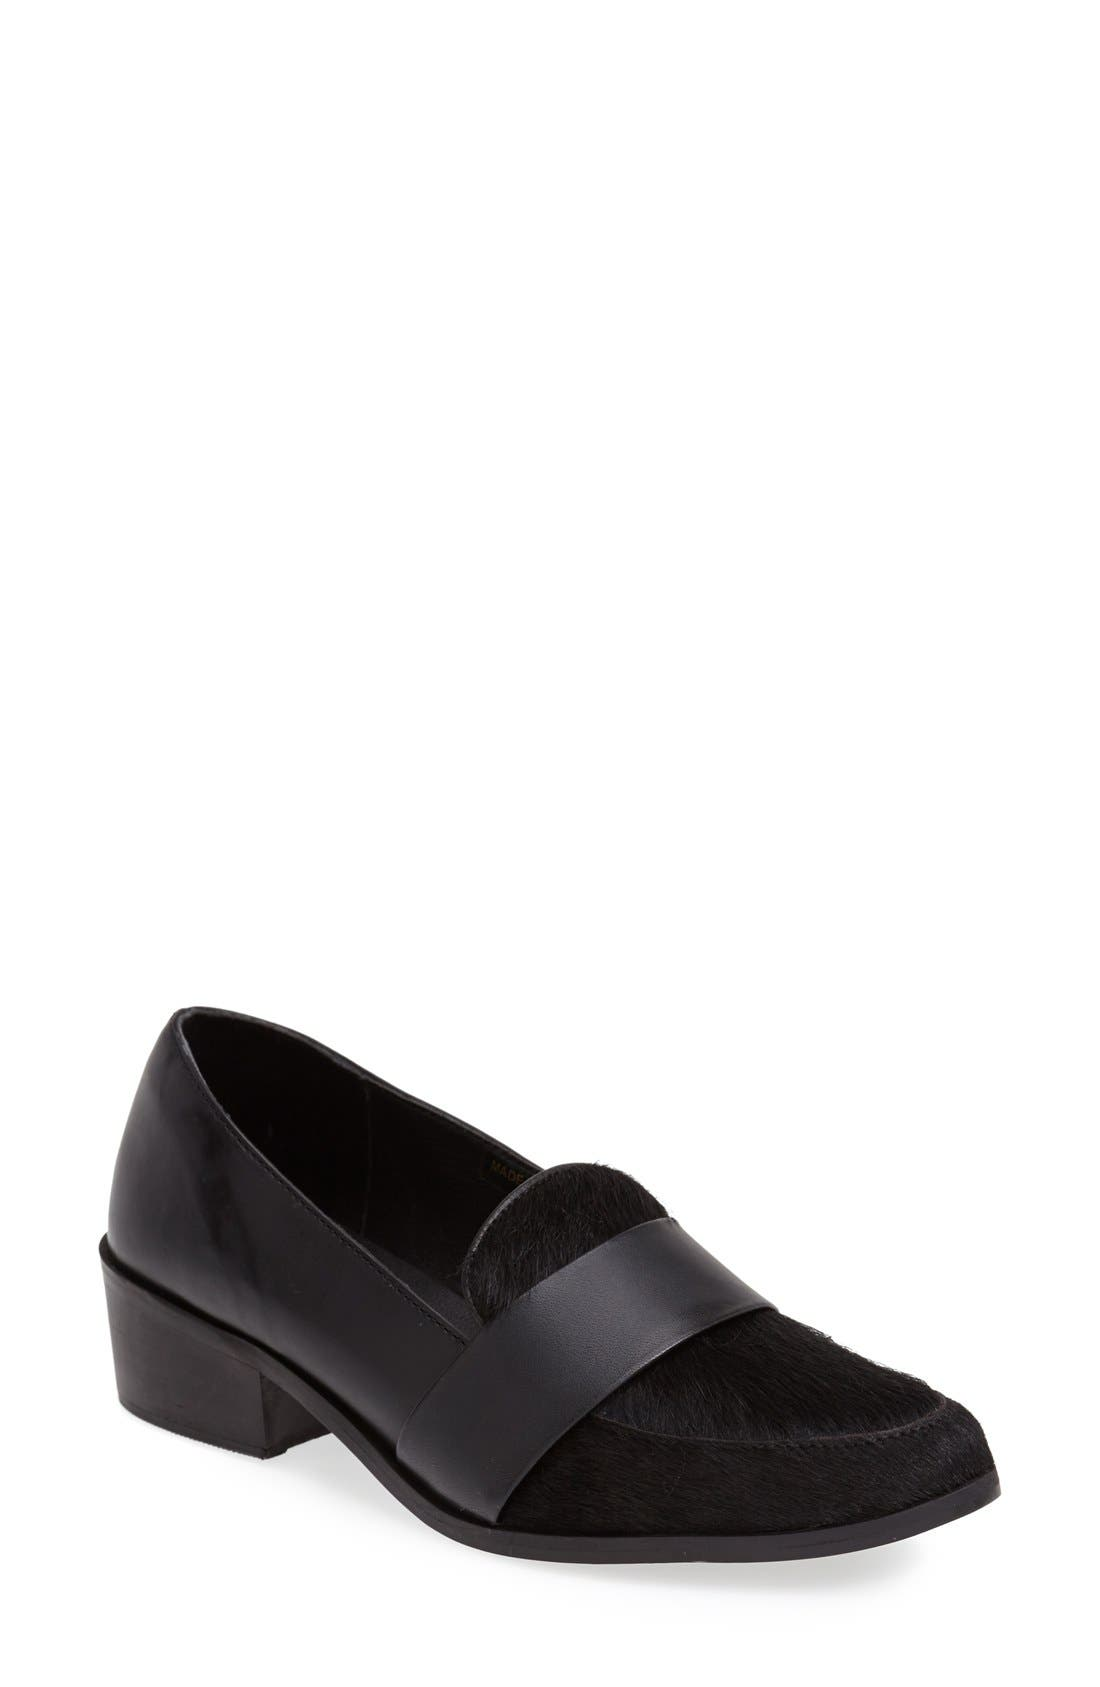 'Baha' Calf Hair and Leather Loafer,                         Main,                         color, 001